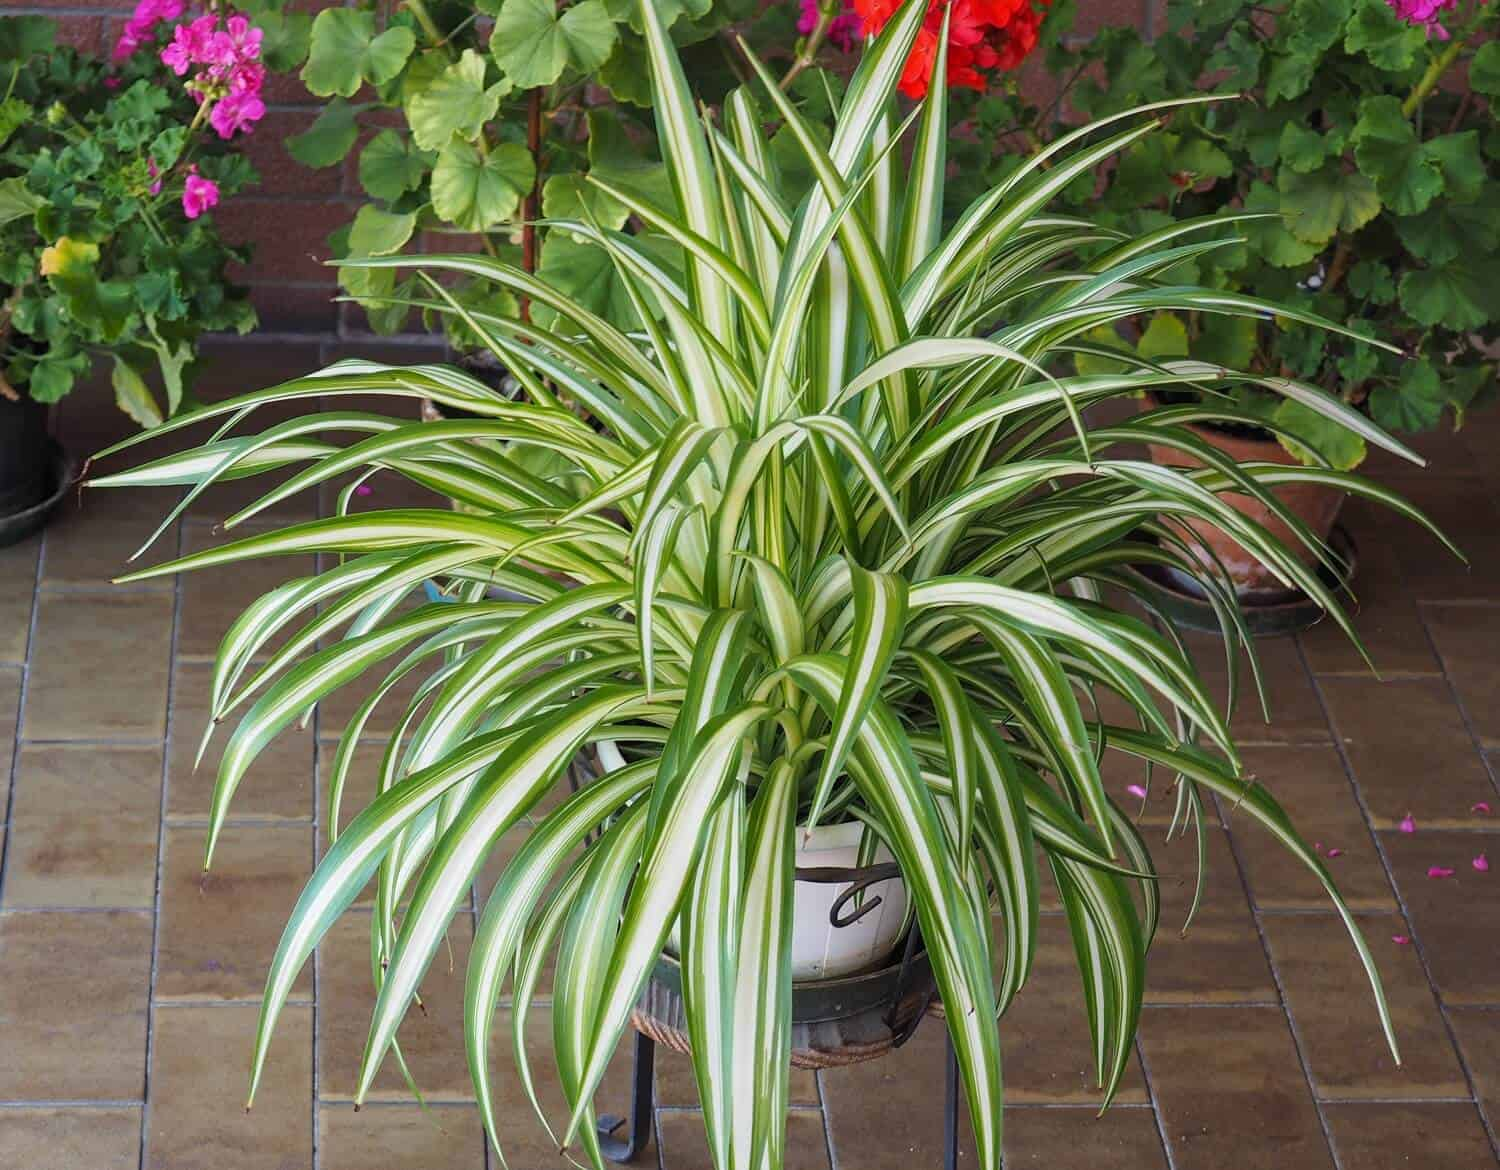 If you want to enrich your home garden with so many plants in number, propagating spider plants is one of the most suitable options for you.